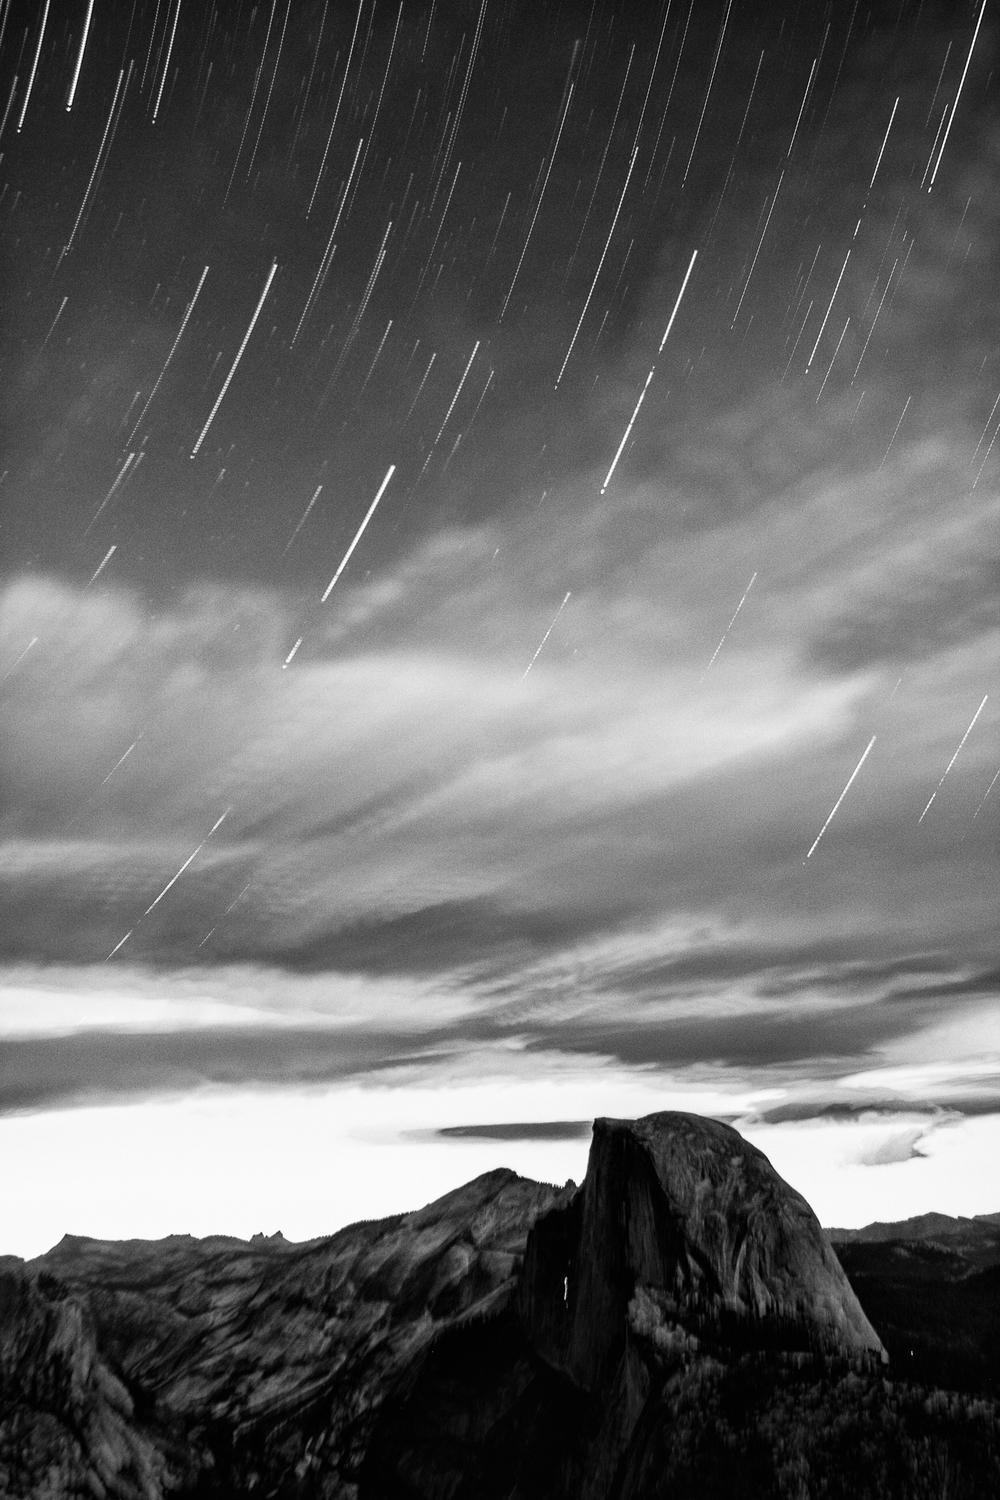 StarStaX_yosemite-9331-2-yosemite-9398-2_lighten-Edit.jpg